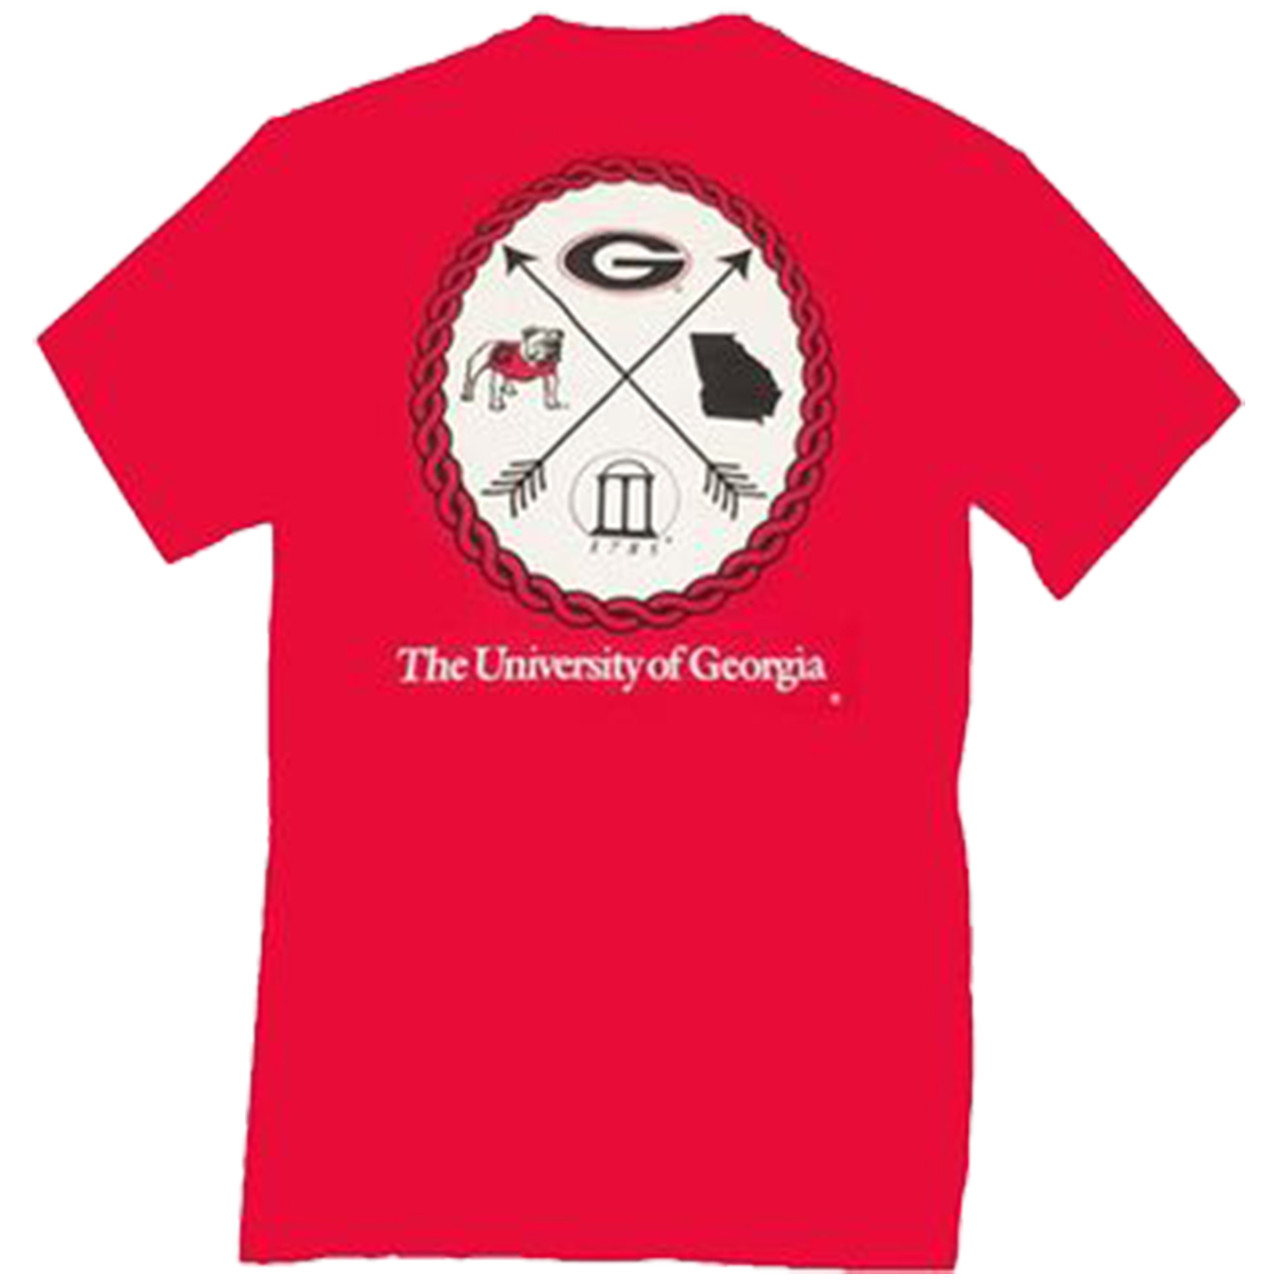 e002ad9ada6 University Of Georgia Arrow Shirt Sleeve T-shirt - Trenz Shirt Company